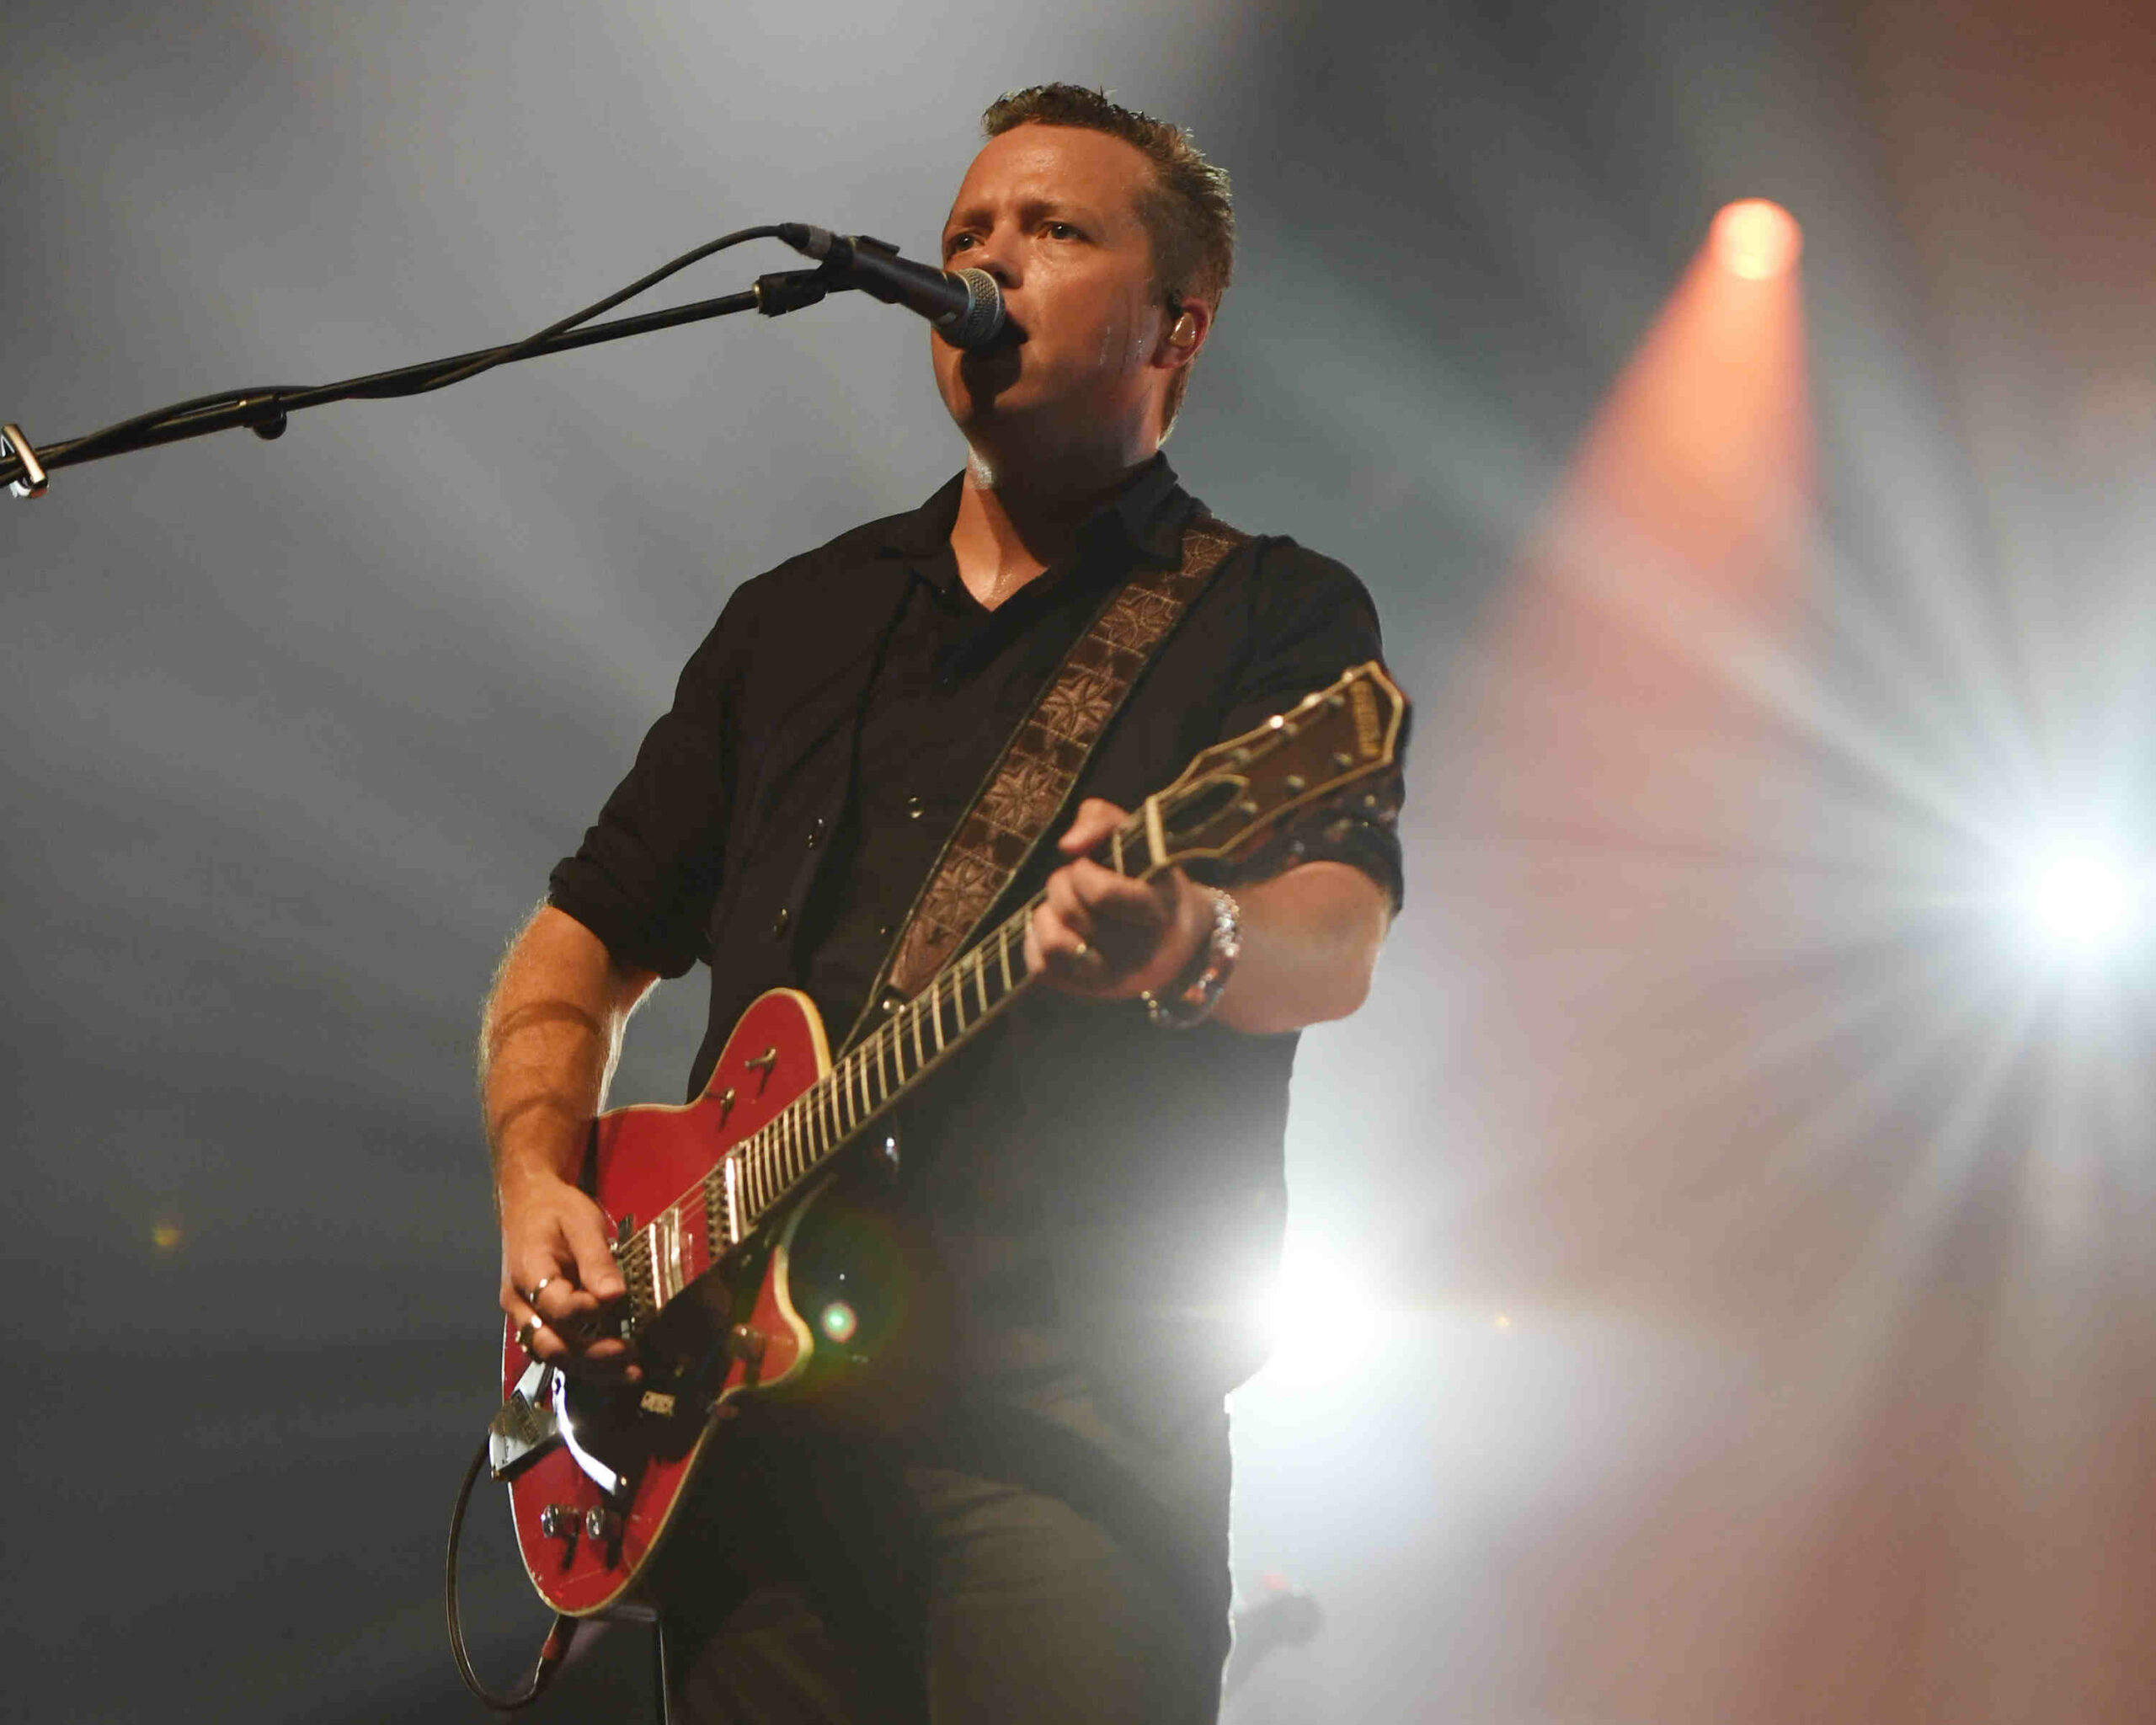 MIAMI BEACH, FL - JULY 21: Jason Isbell of The 400 Unit performs at the Fillmore on July 21, 2017 in Miami Beach, Florida. Credit Larry Marano © 2017